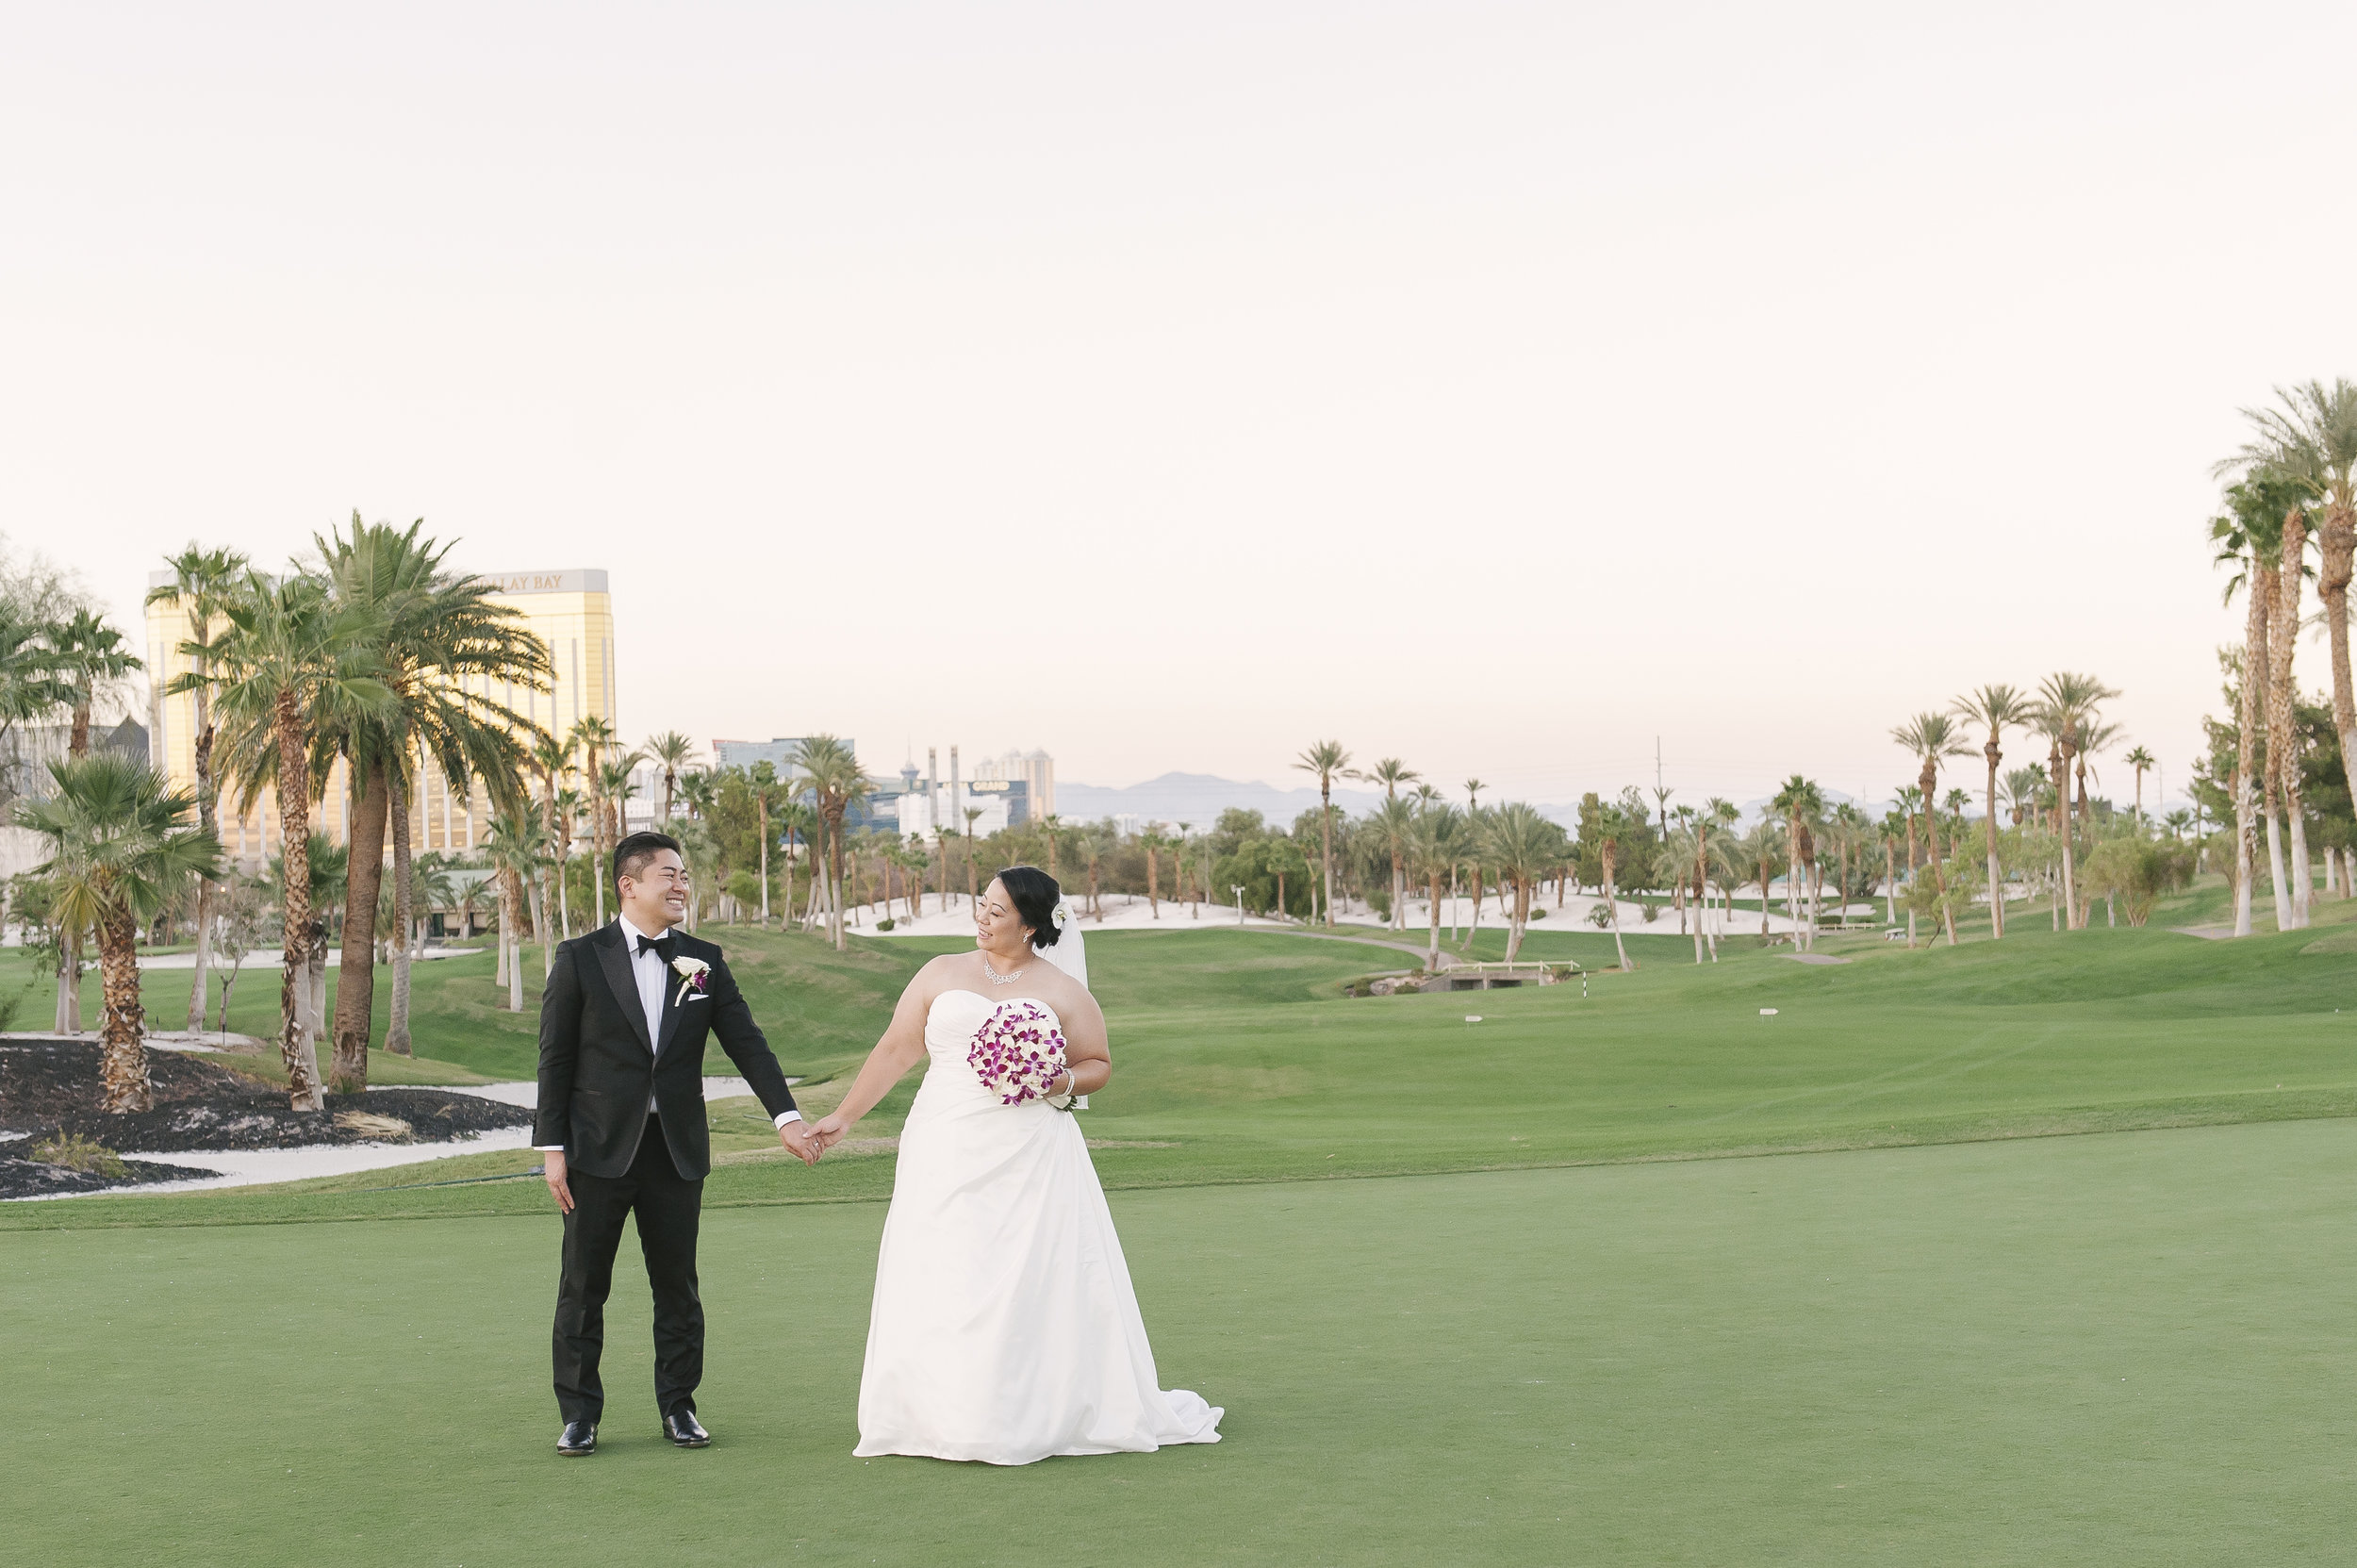 Cili_Golf_Club_Las_vegas_wedding_photography-01-2.jpg